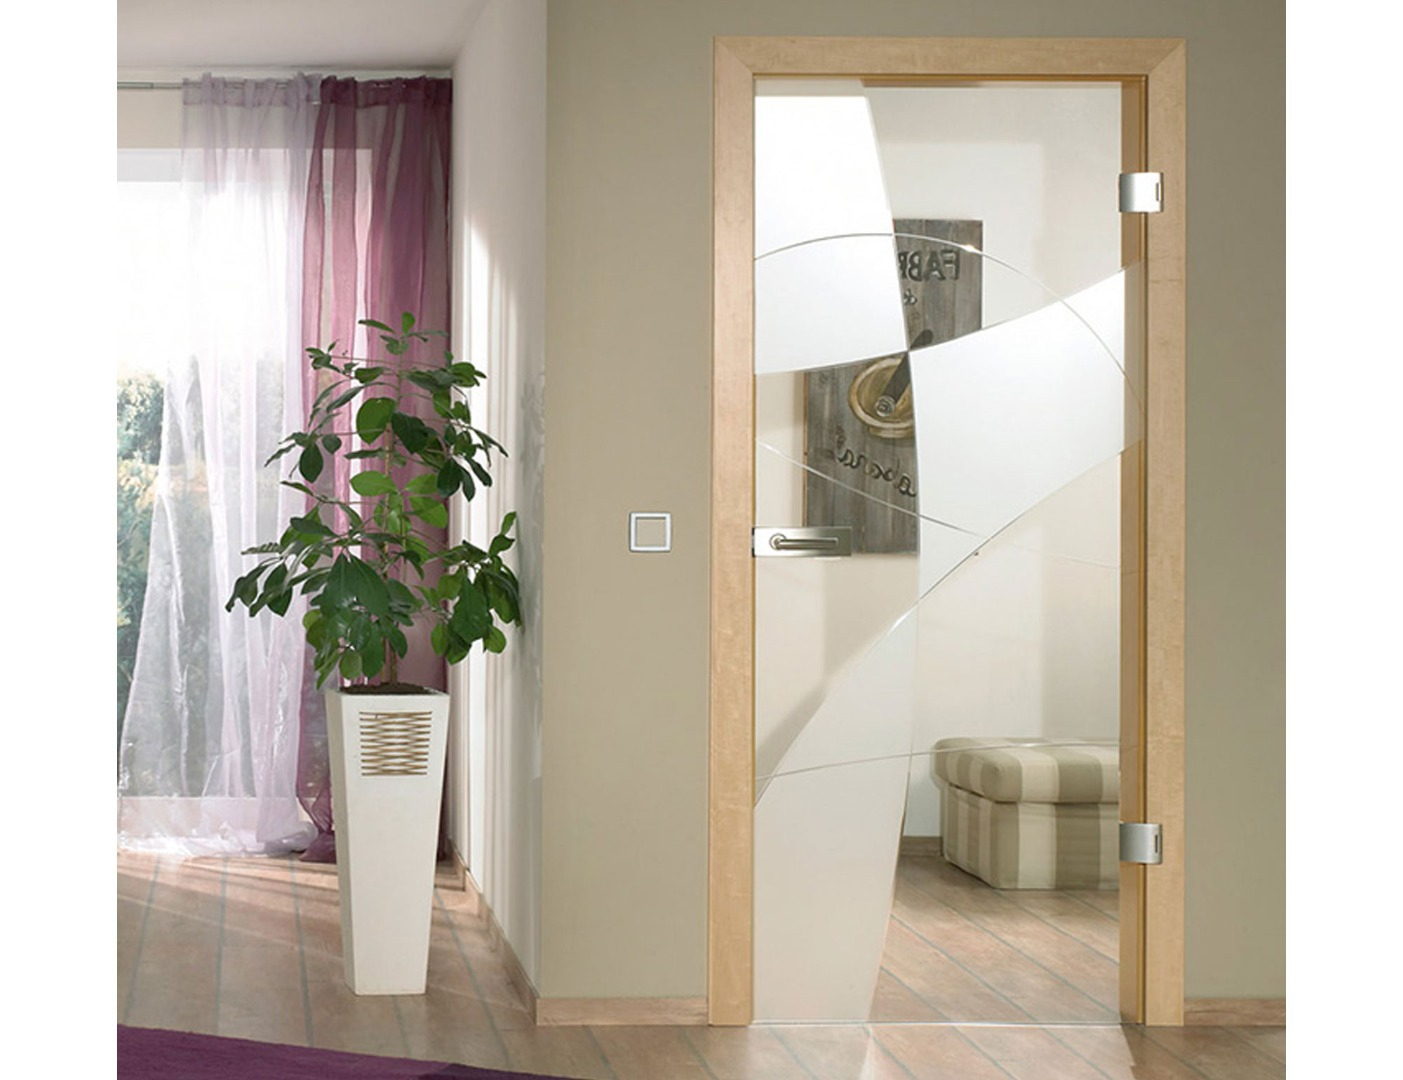 Nubia Grooved Glass Door Design - Internal Sliding Glass Doors